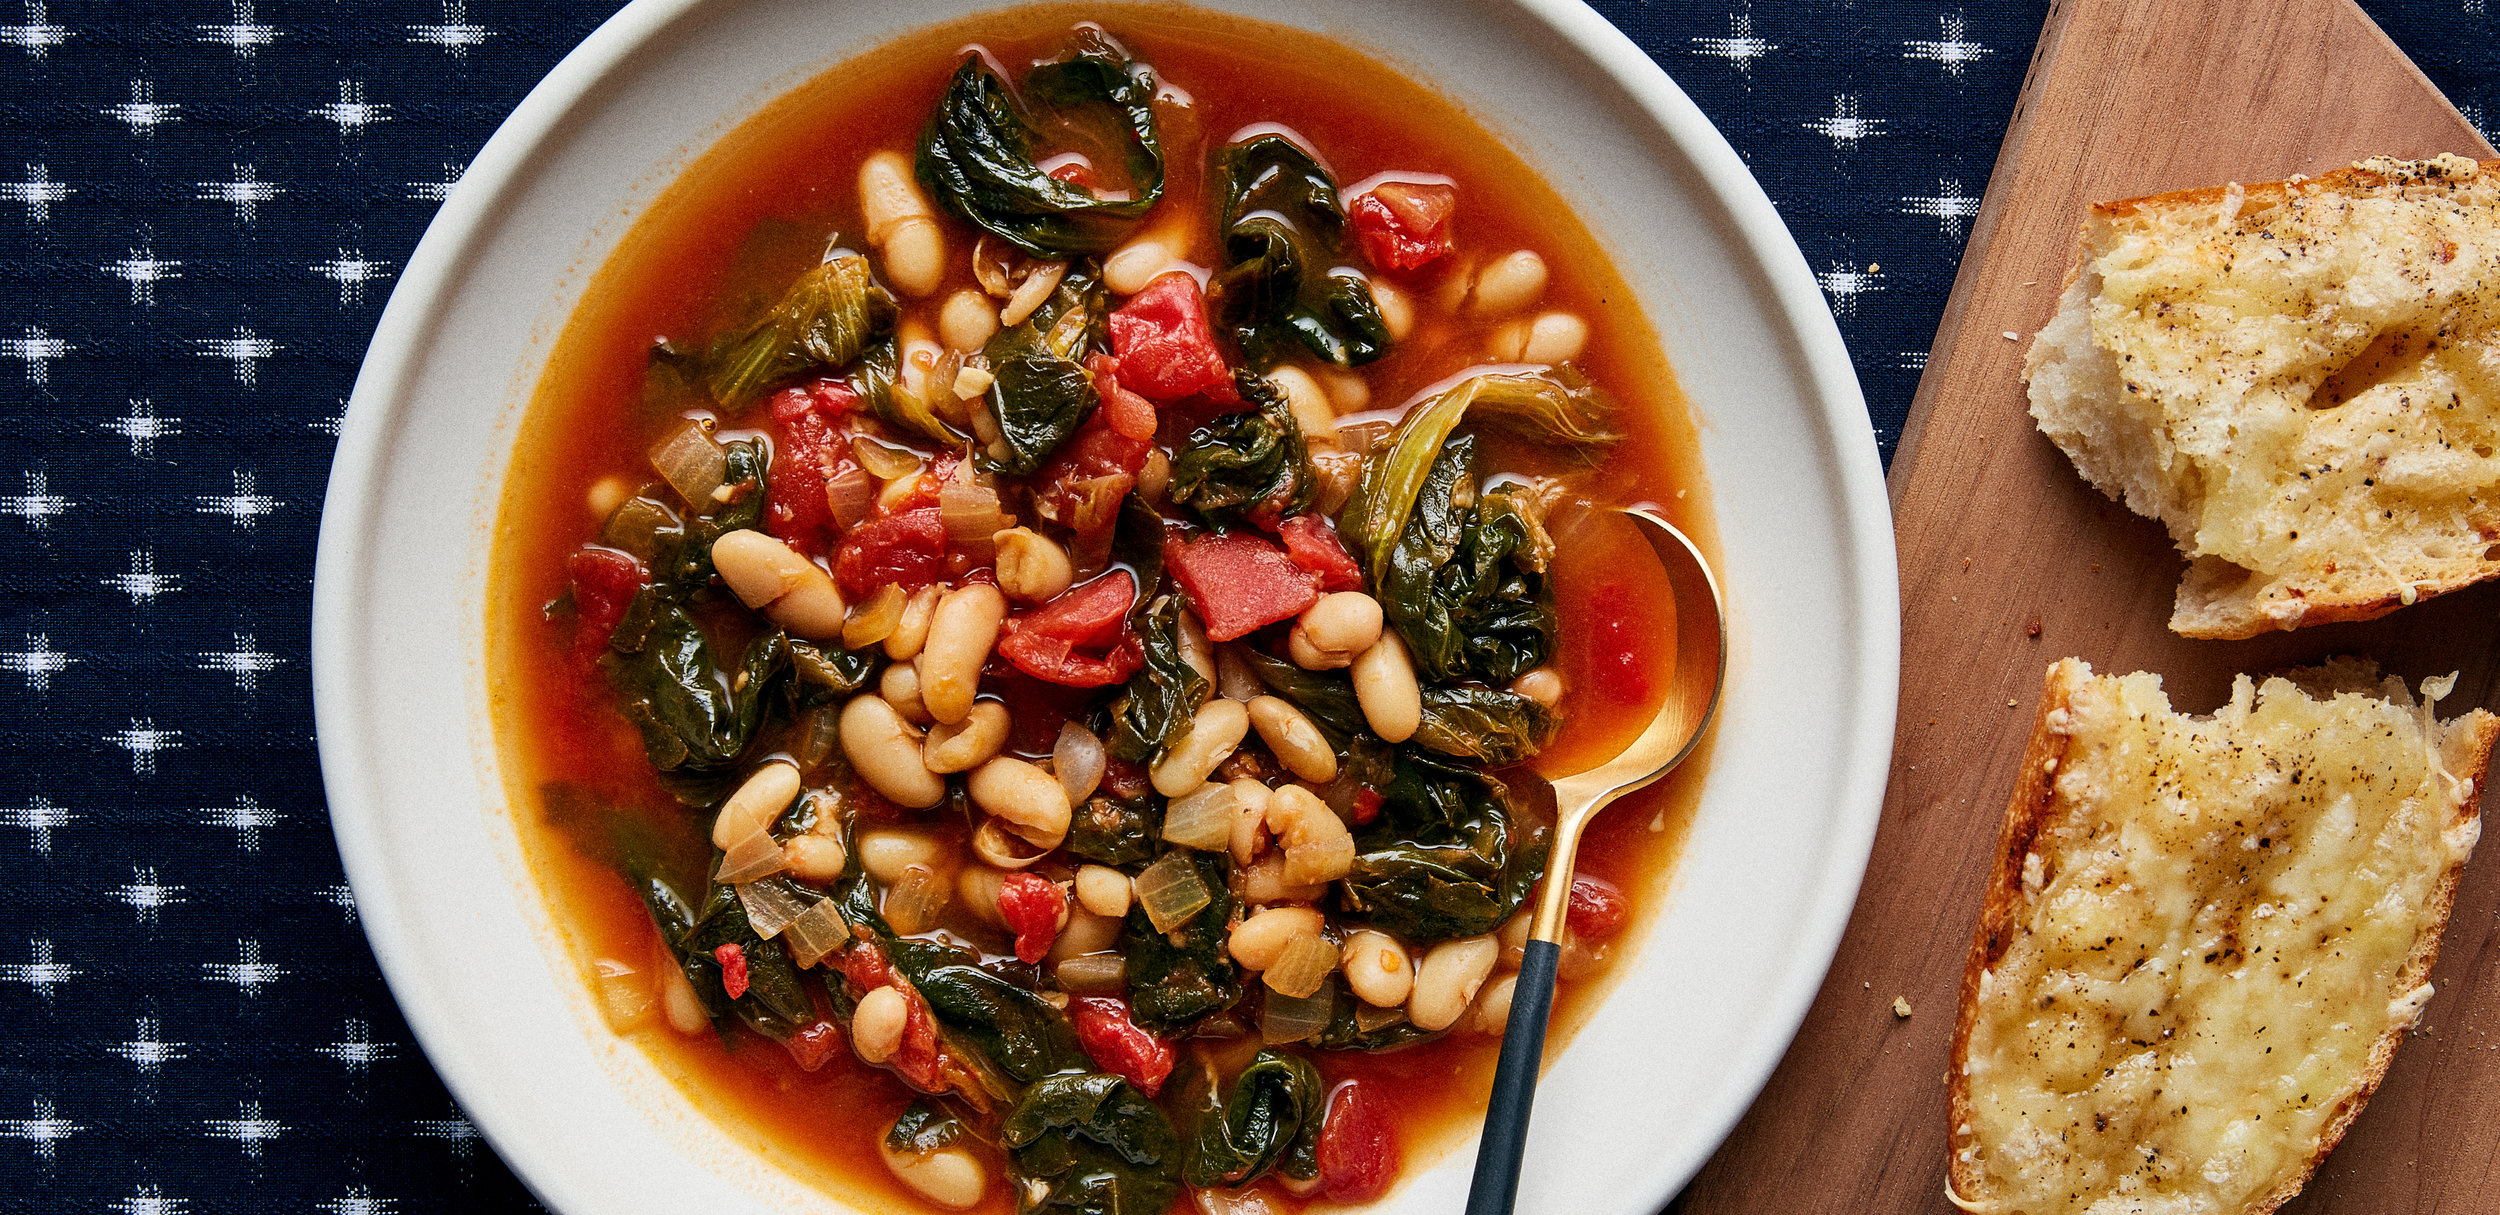 Escarole and White Bean Stew with Garlic Bread — 0008 — HERO.jpg